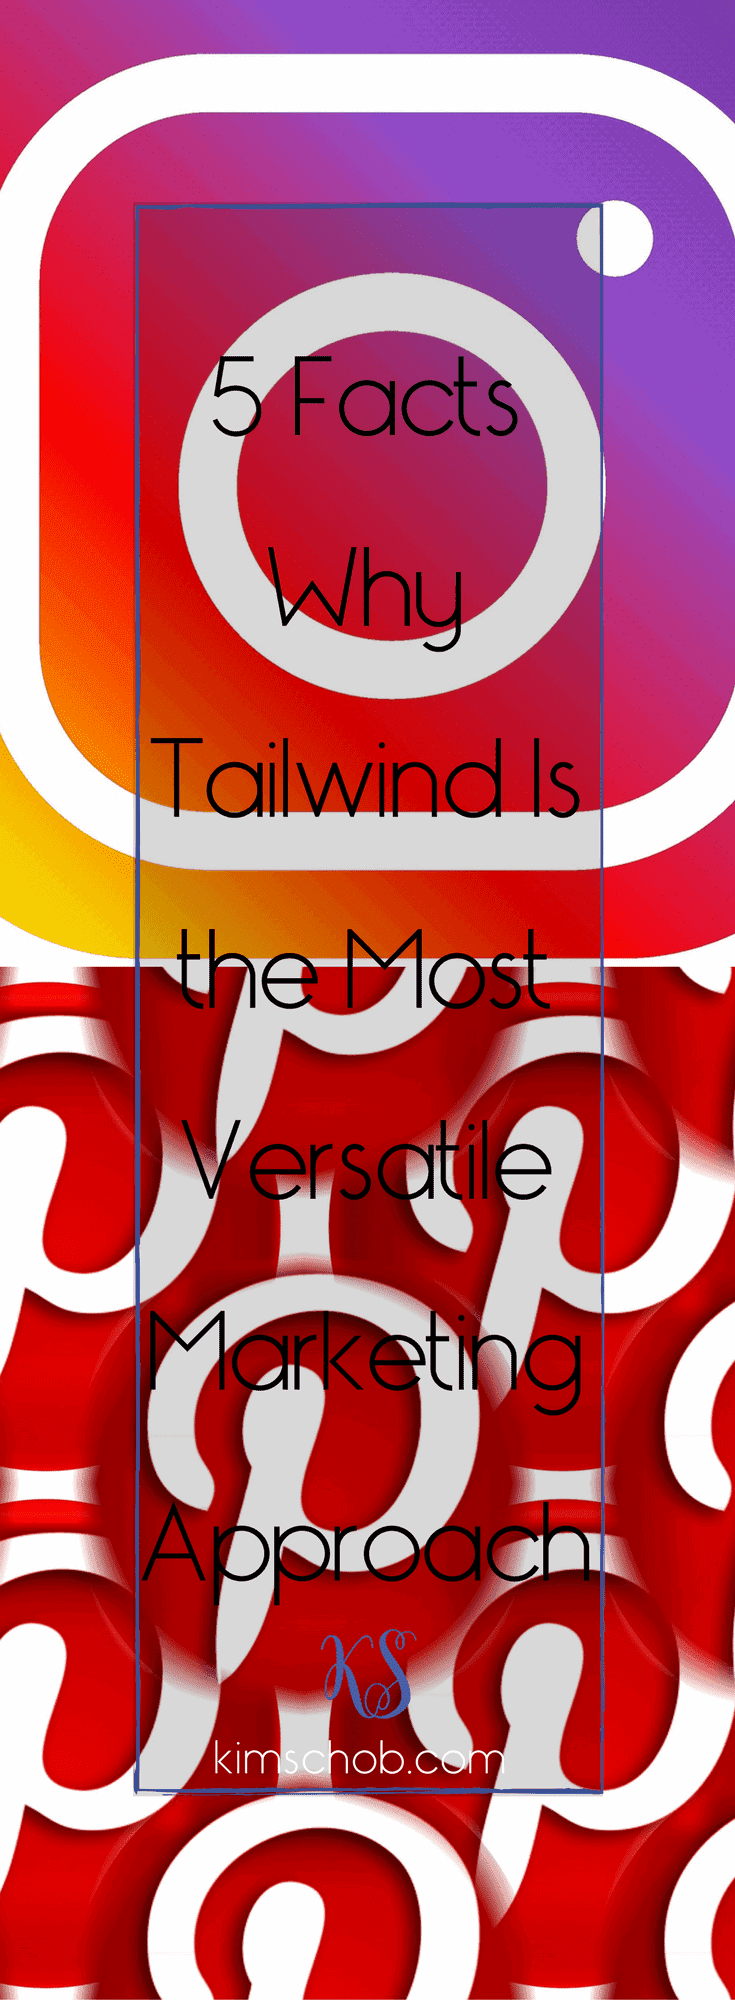 5 Facts Why Tailwind Is the Most Versatile Instagram & Pinterest Marketing Approach| kimschob.com | #tailwindapp #marketingapproach